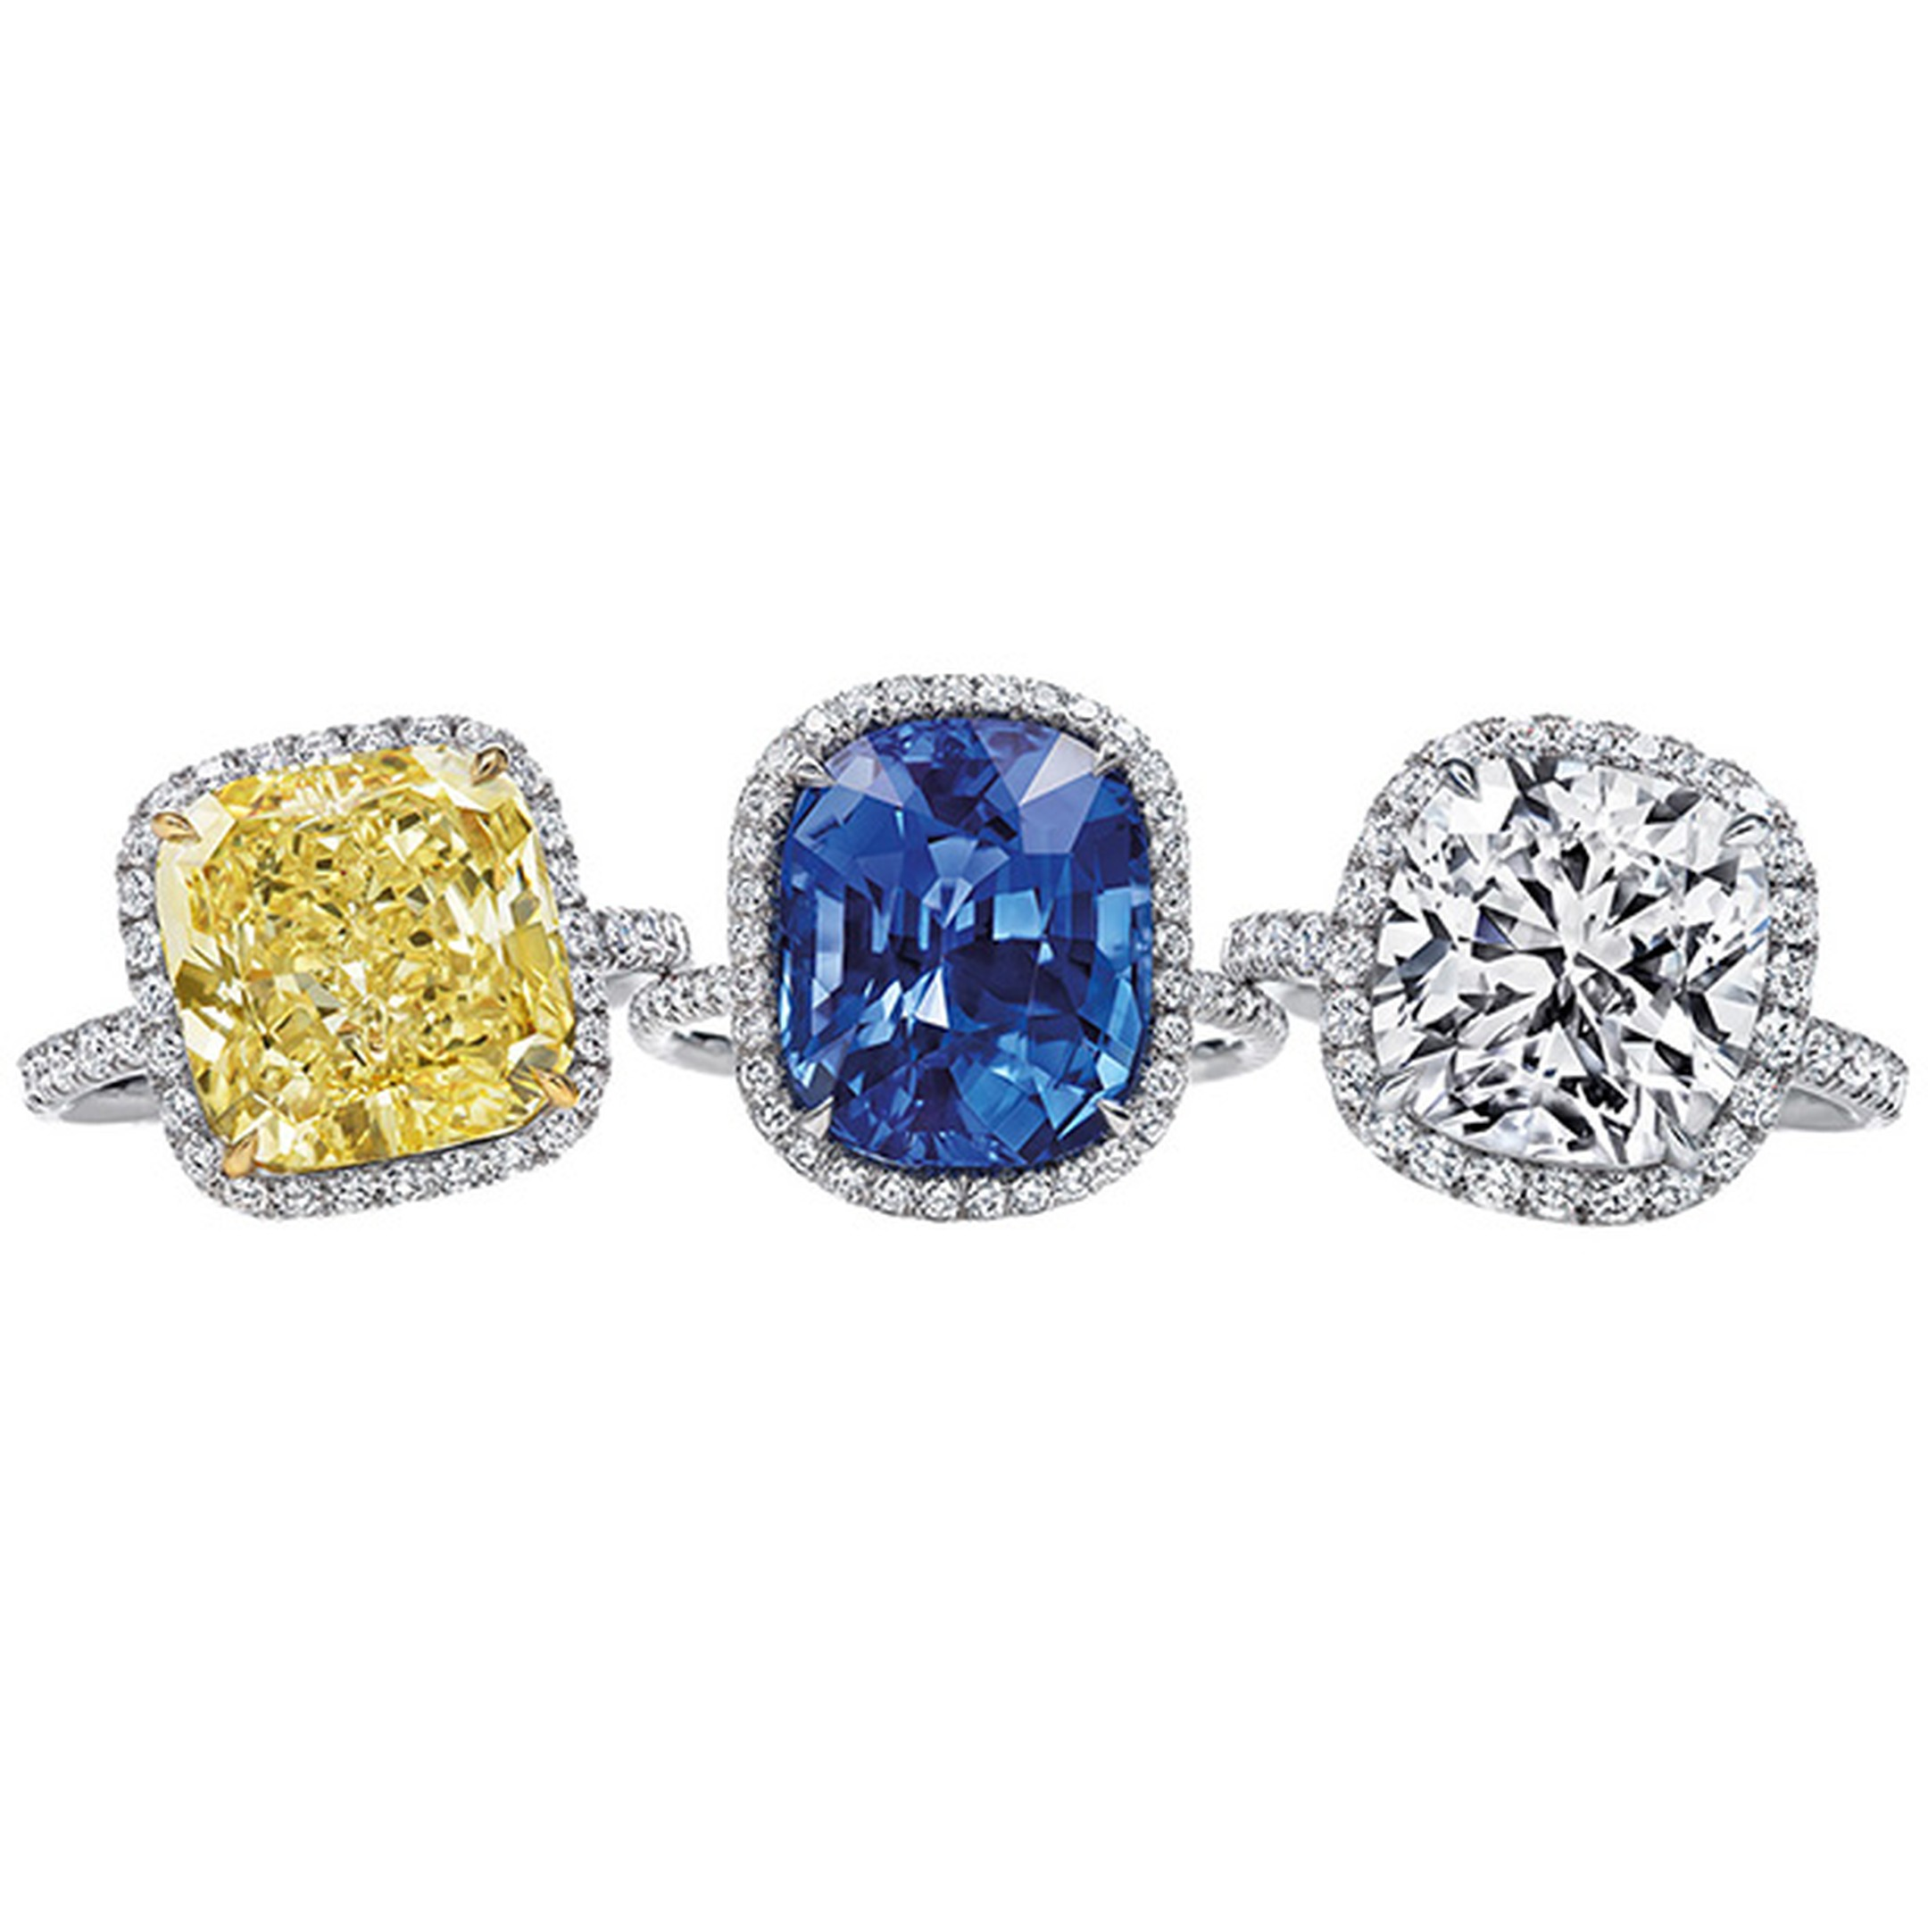 Harry Winston micropave rings